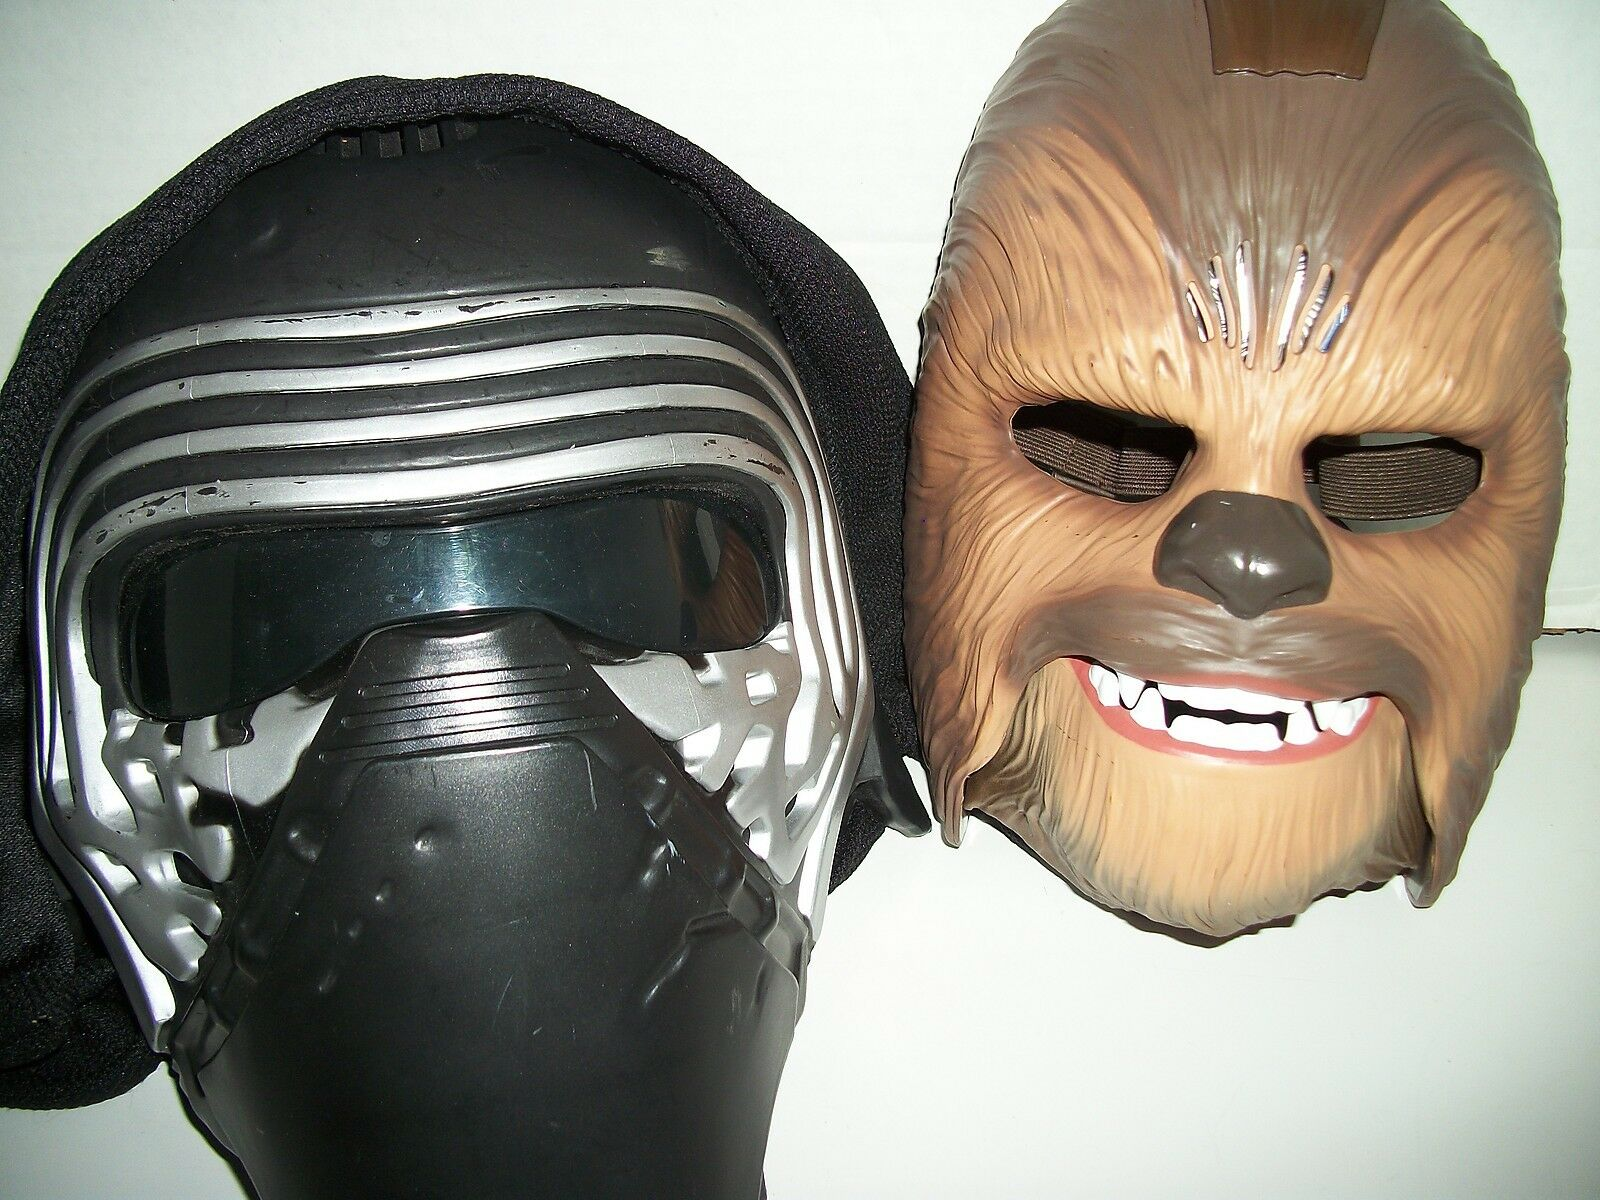 Electronic Star Wars Chewbacca & Kylo Ren Masks with Sound